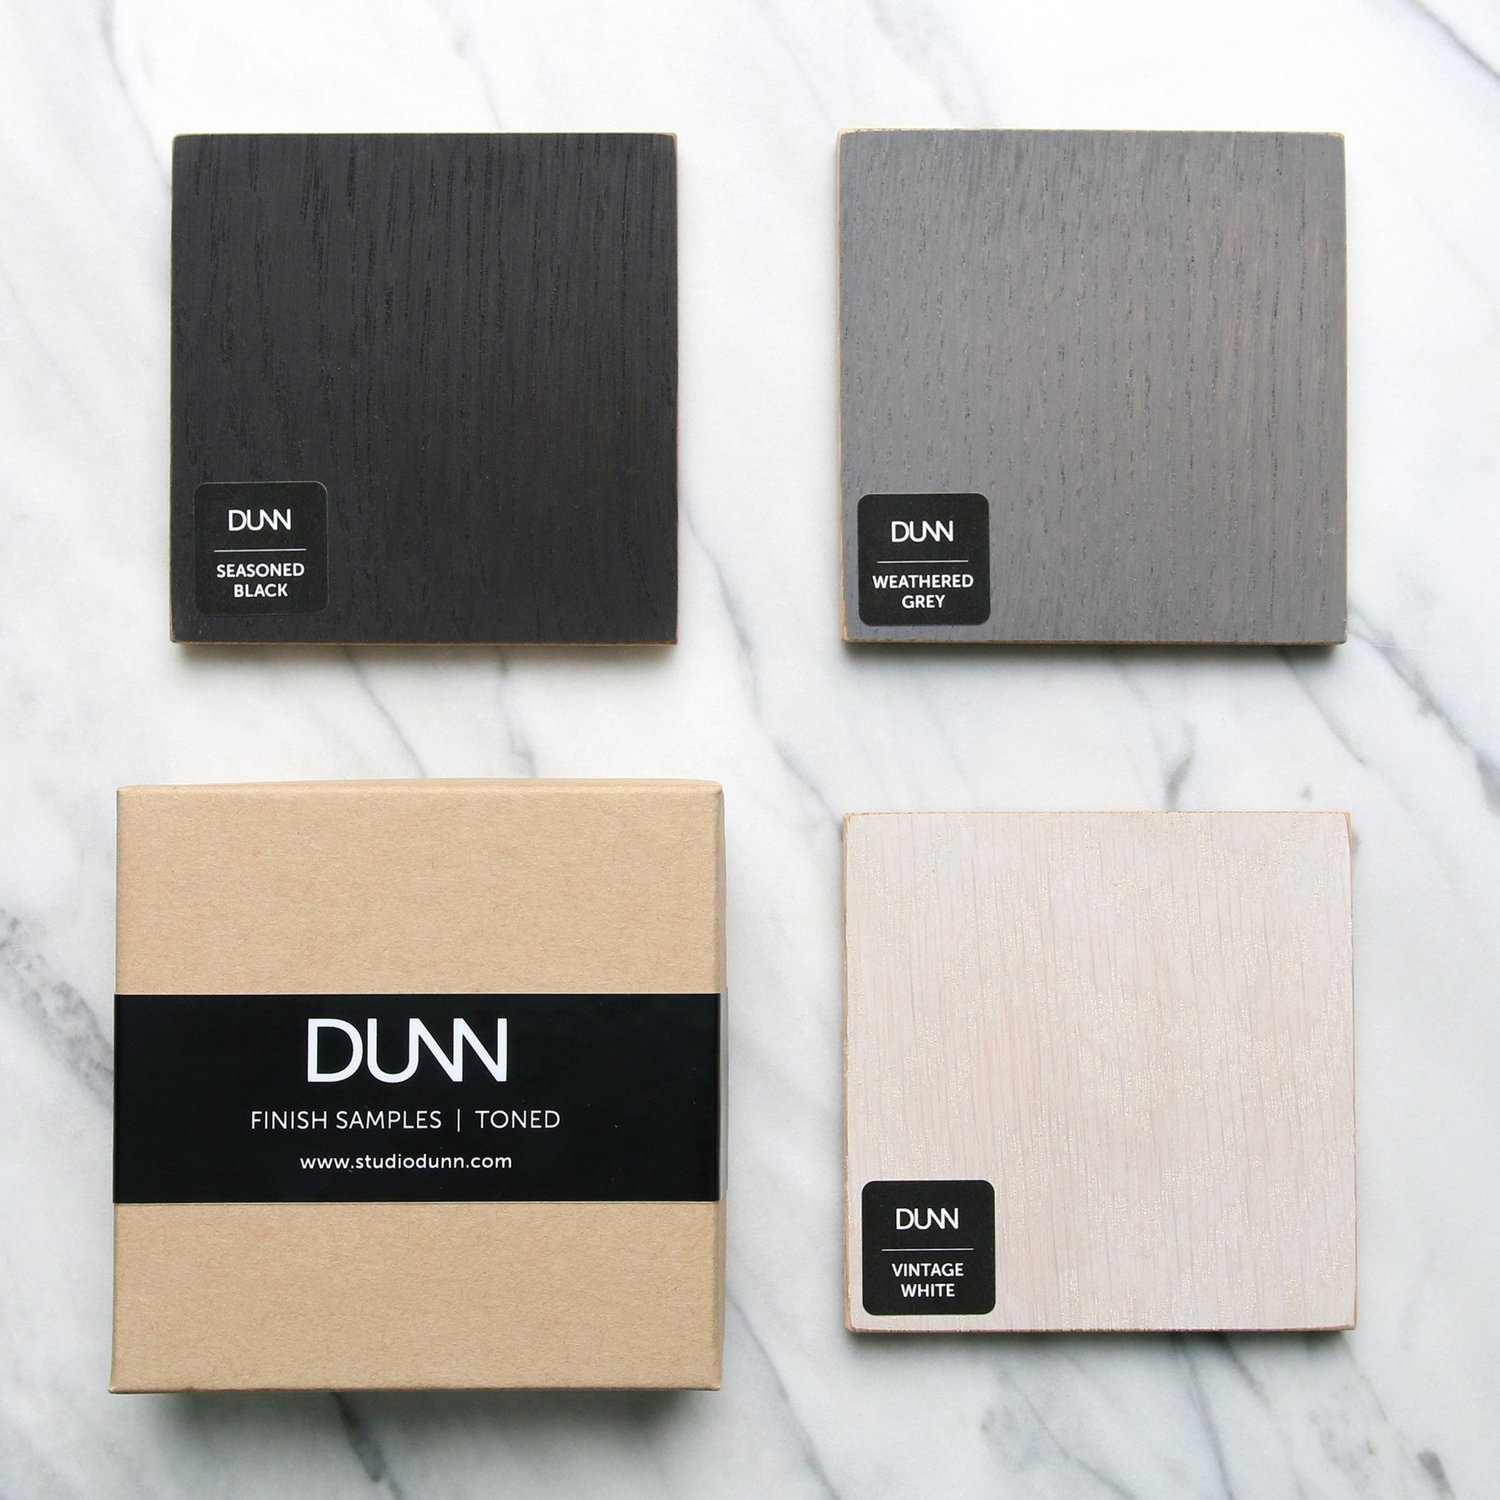 Dunn swatches 2